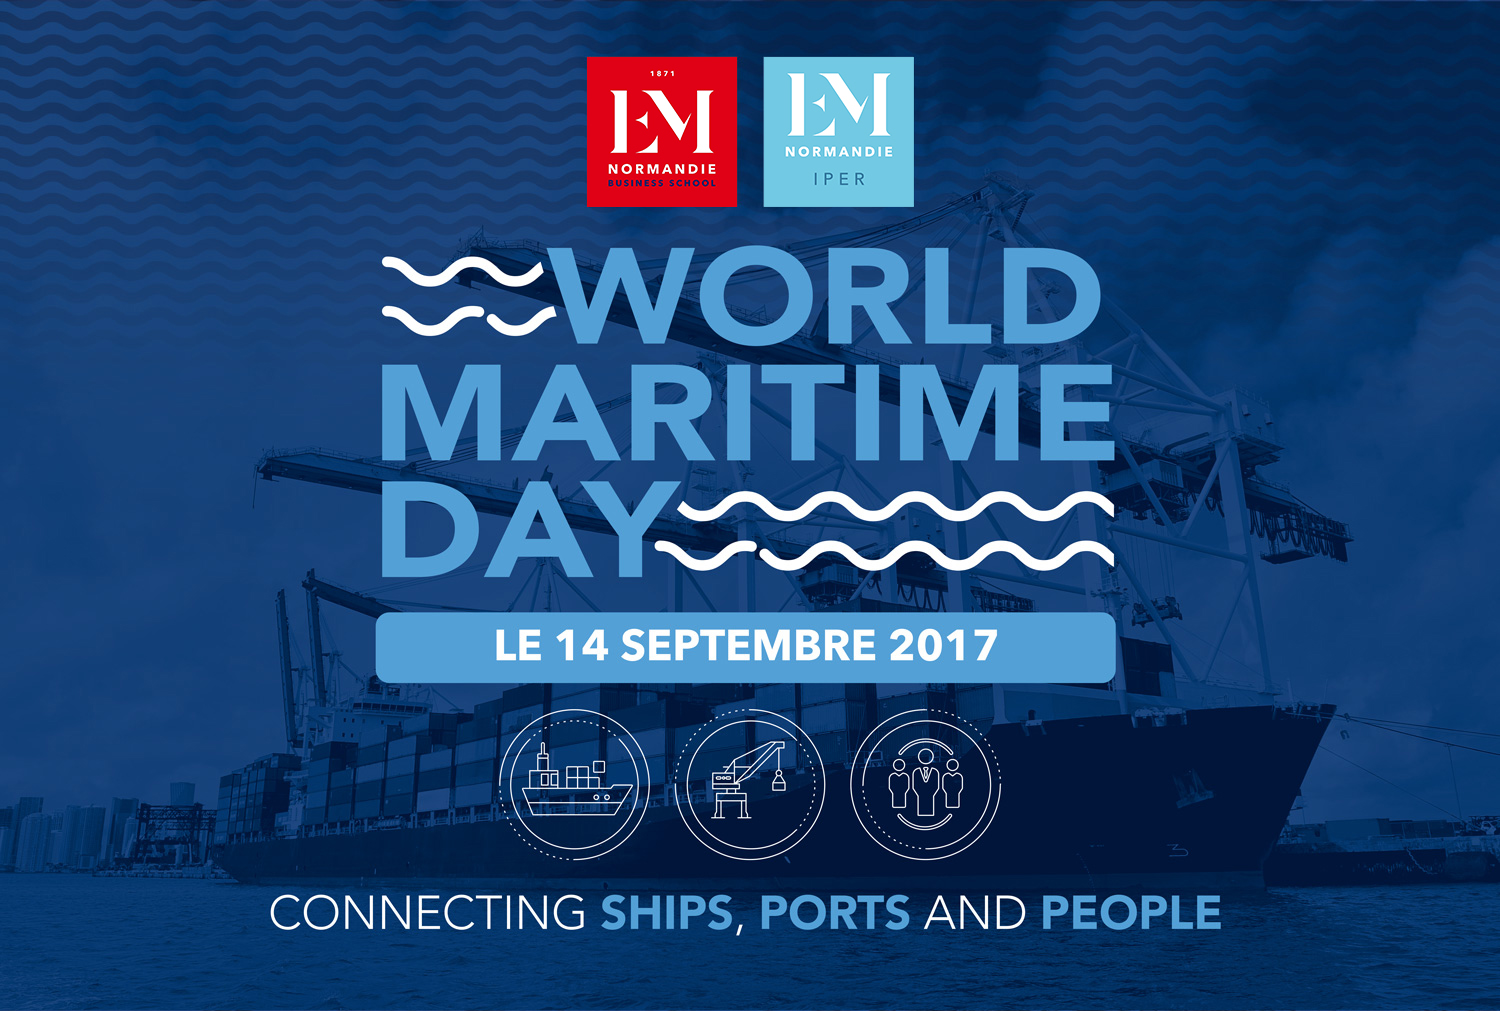 L'IPER célèbre le World Maritime Day 2017